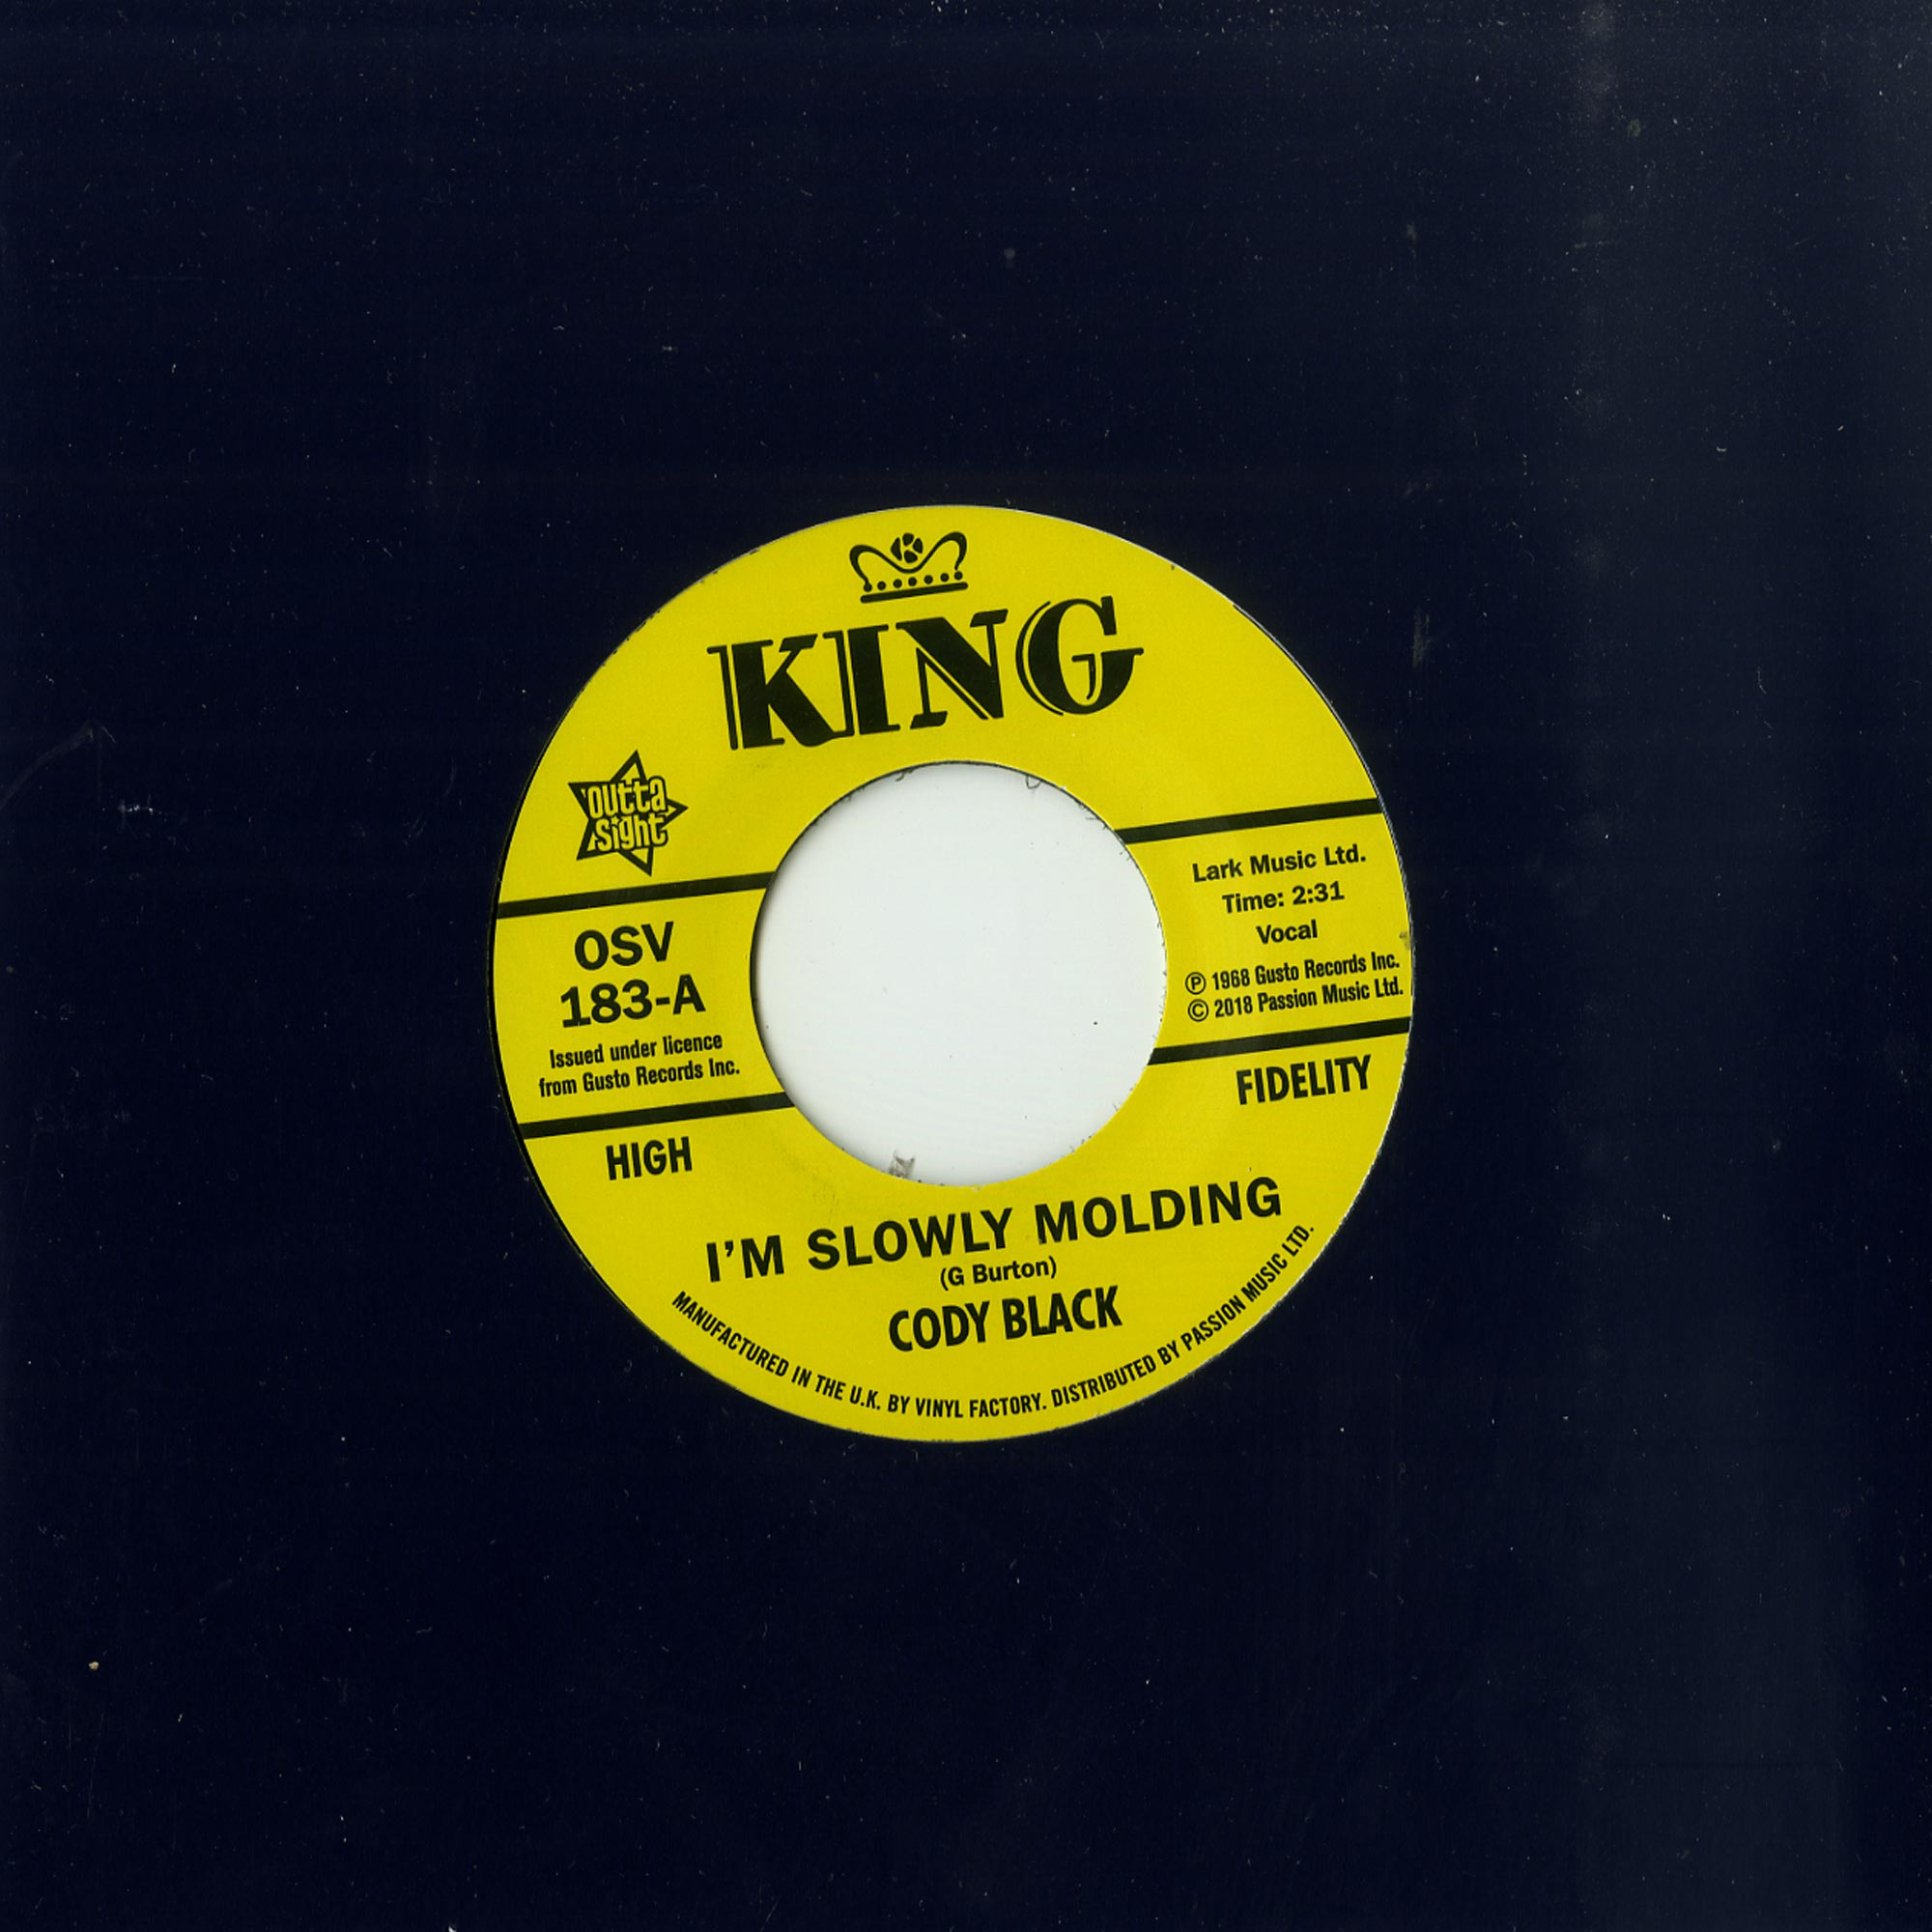 Cody Black / Charles Spurling - I M SLOWLY MOLDING / SHE CRIED JUST A MINUTE